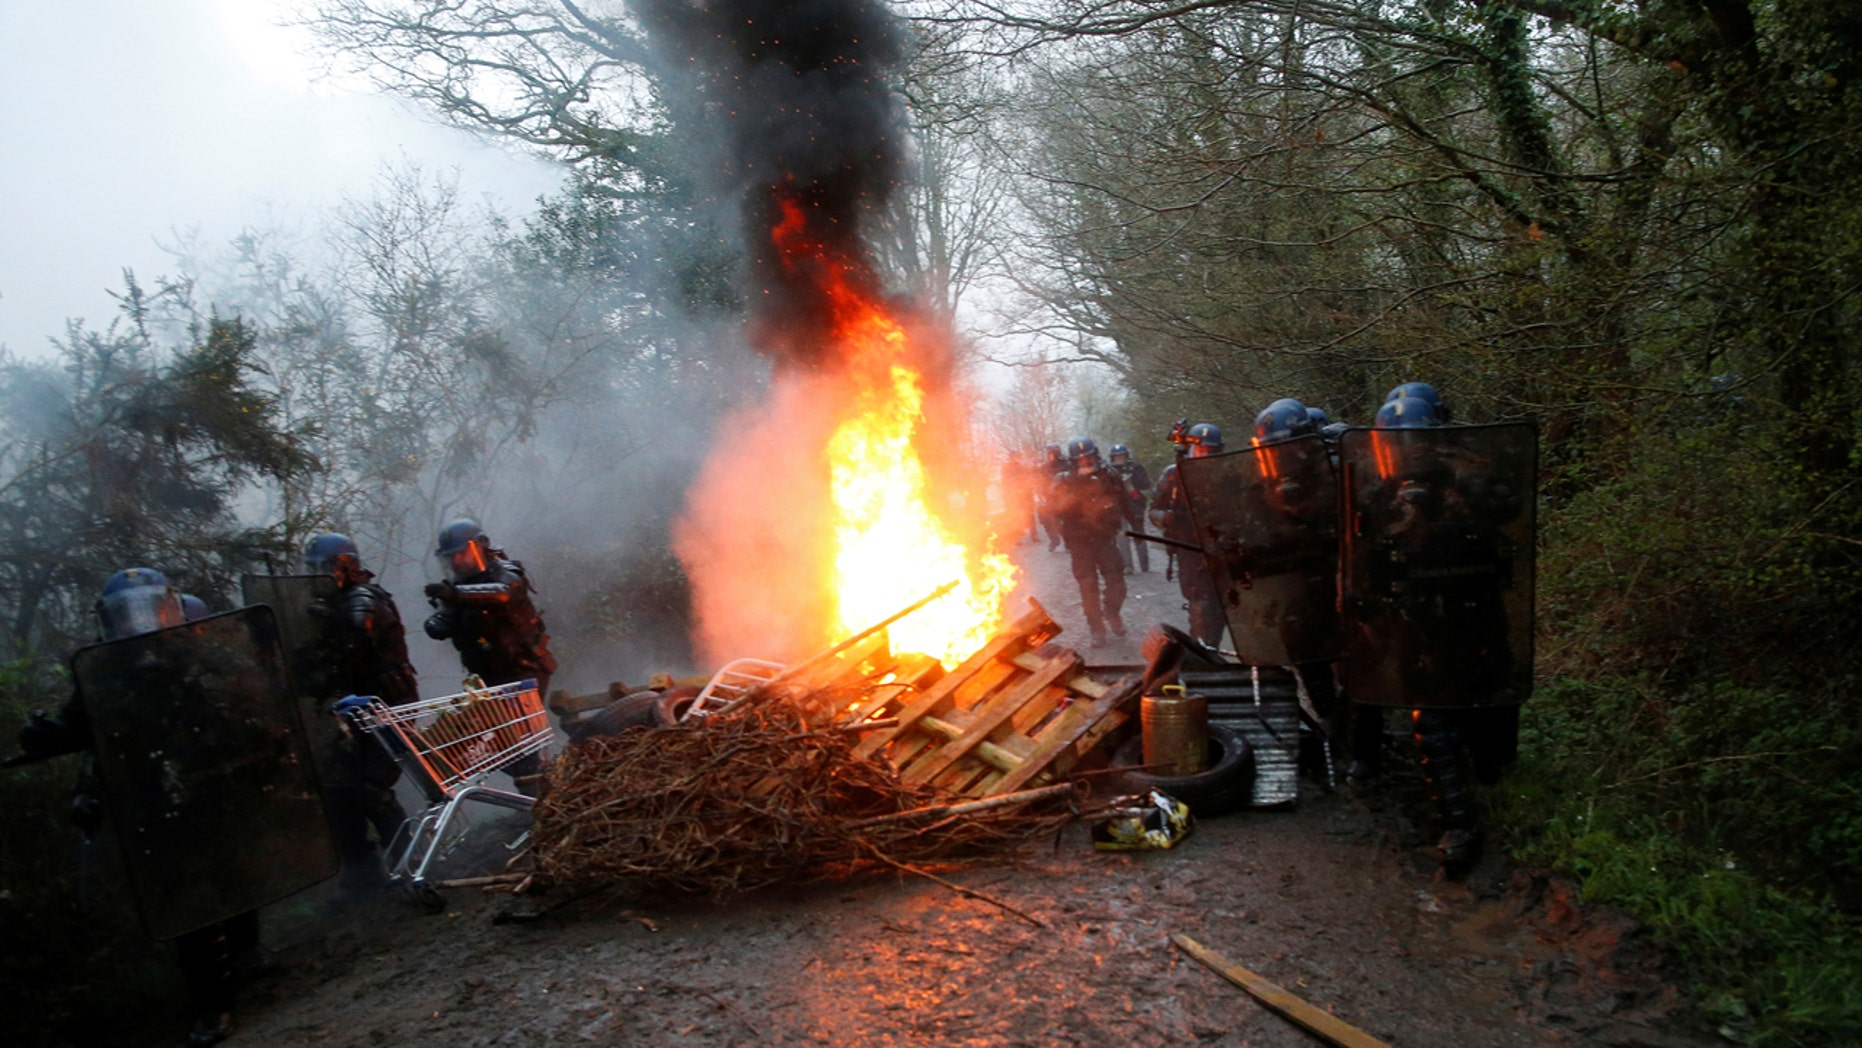 French gendarmes stand near burning debris on a road during an evacuation operation in Notre-Dame-des-Landes, near Nantes, France.